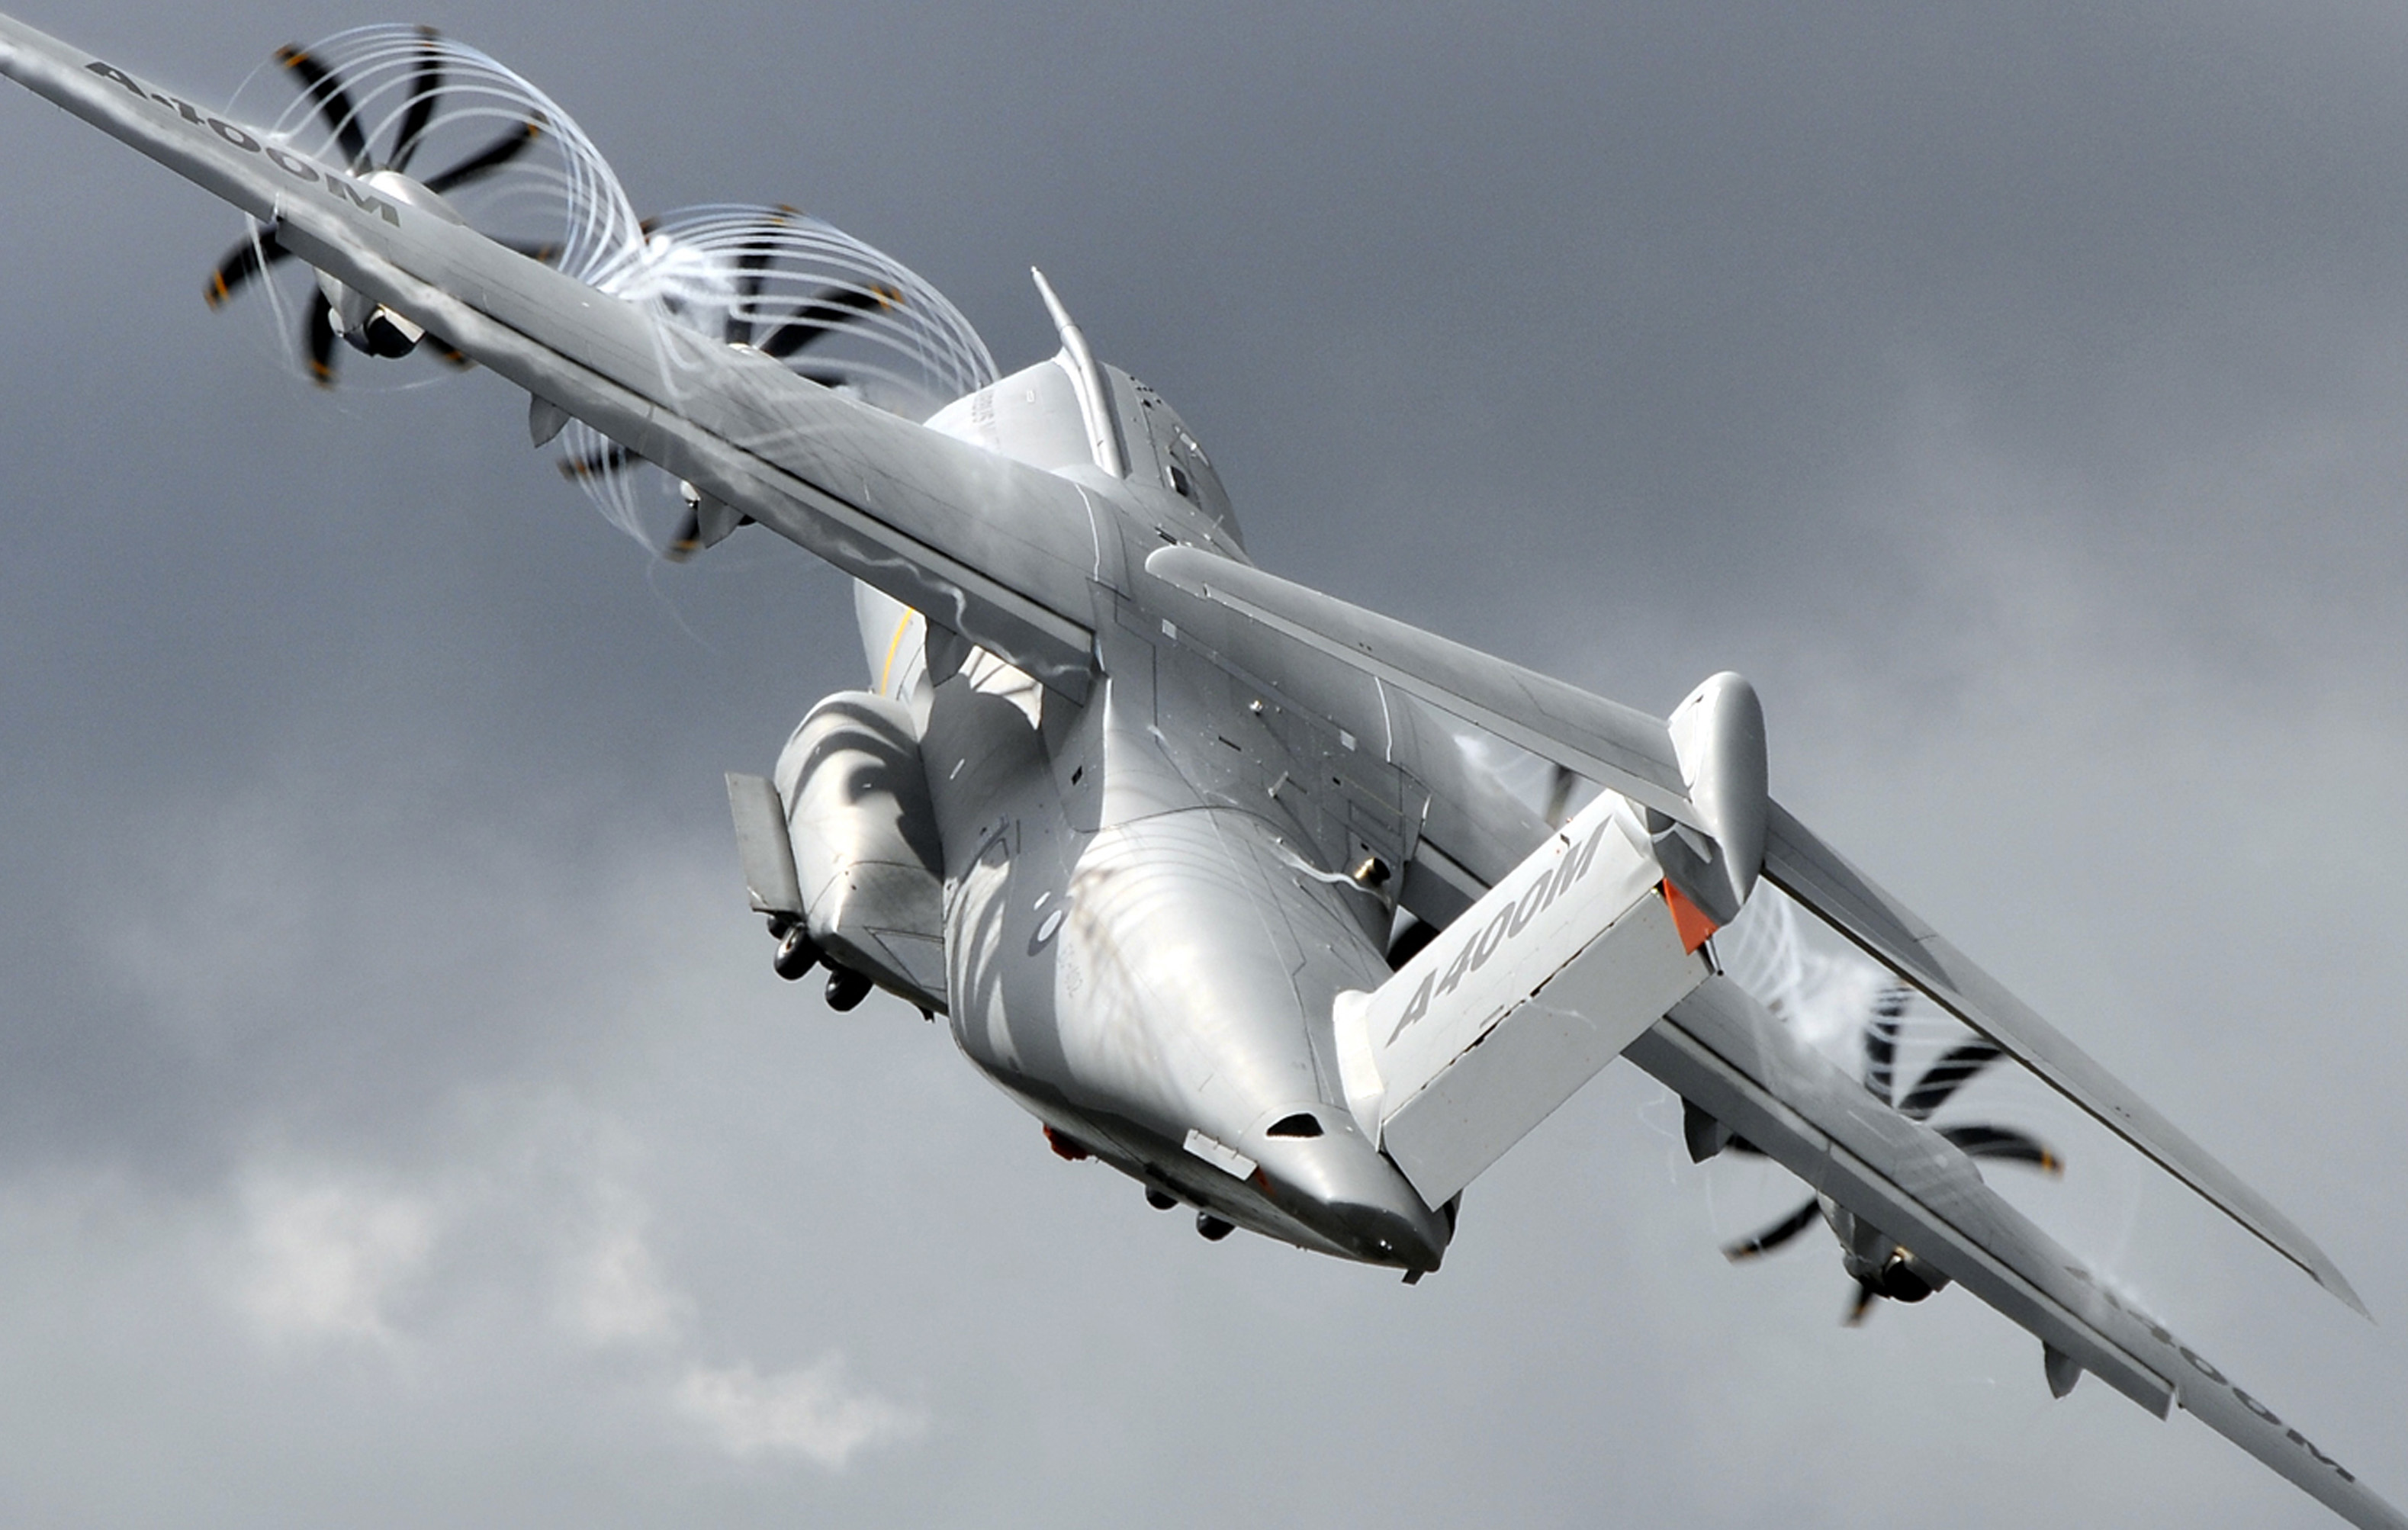 SGA2012: Airlifter manufacturers emphasise different approaches to market